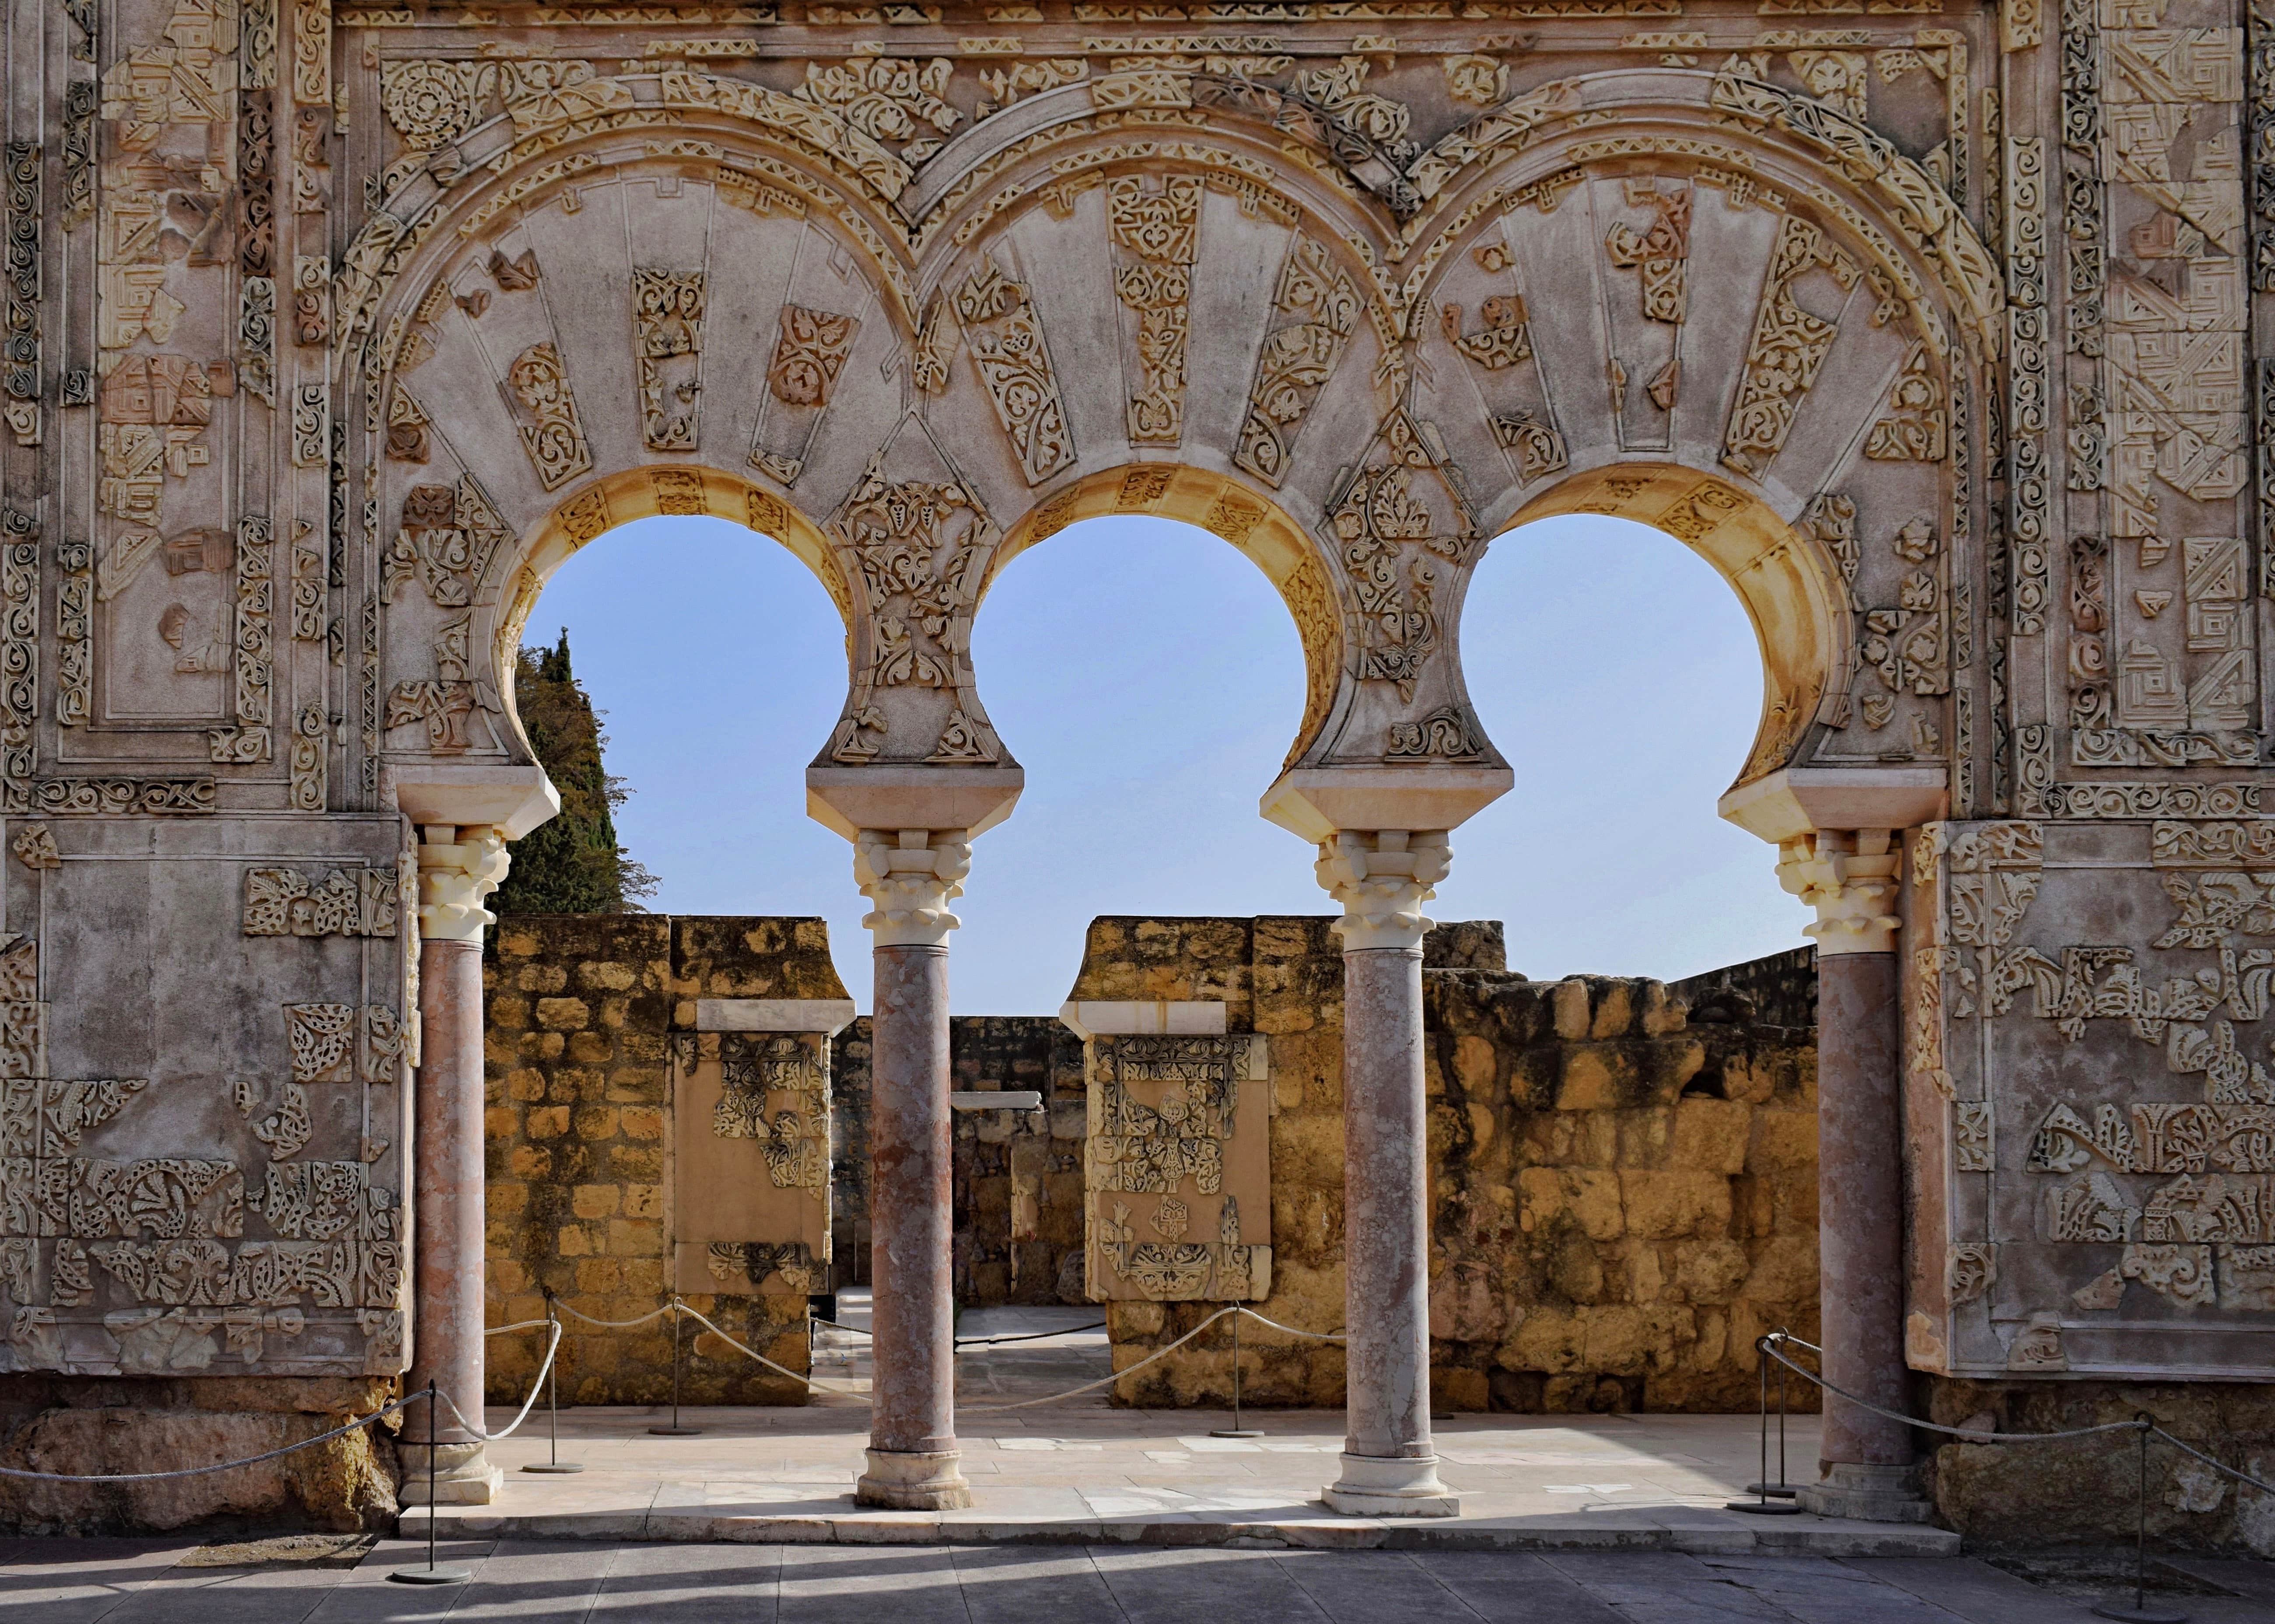 The ruins of Medina Azahara in Cordoba are an amazing place to visit in Spain